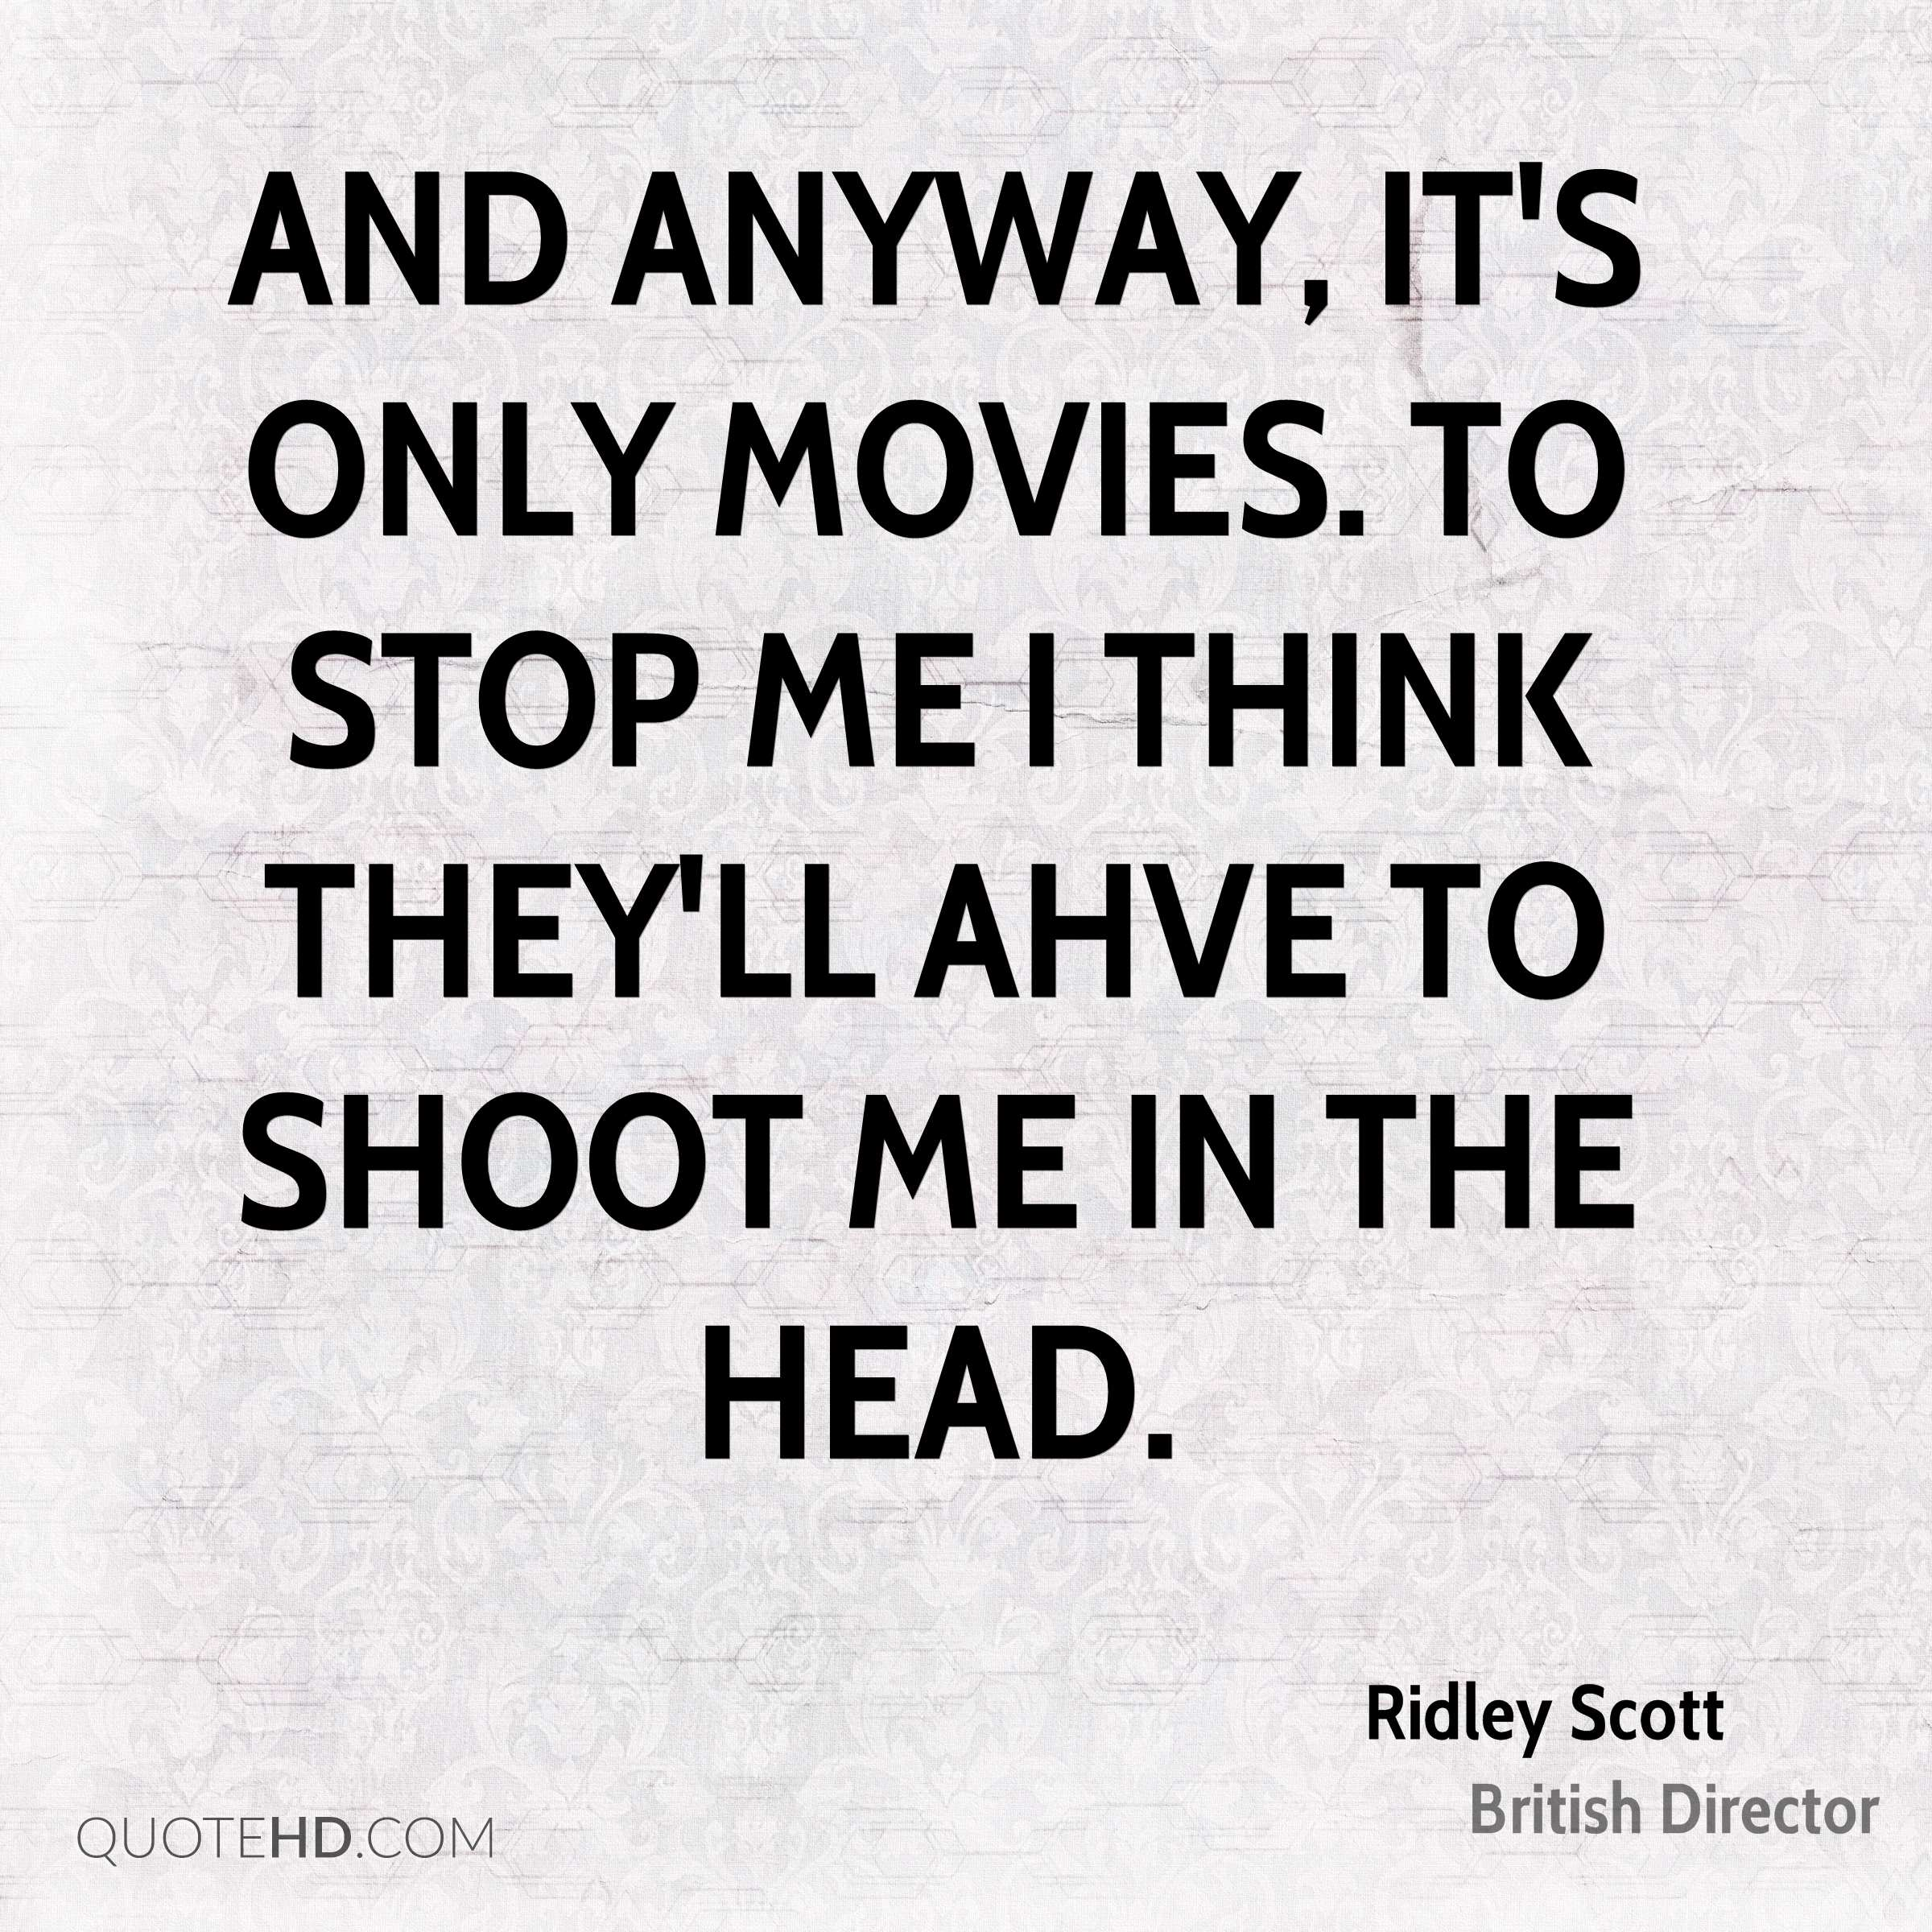 And anyway, it's only movies. to stop me I think they'll ahve to shoot me in the head.